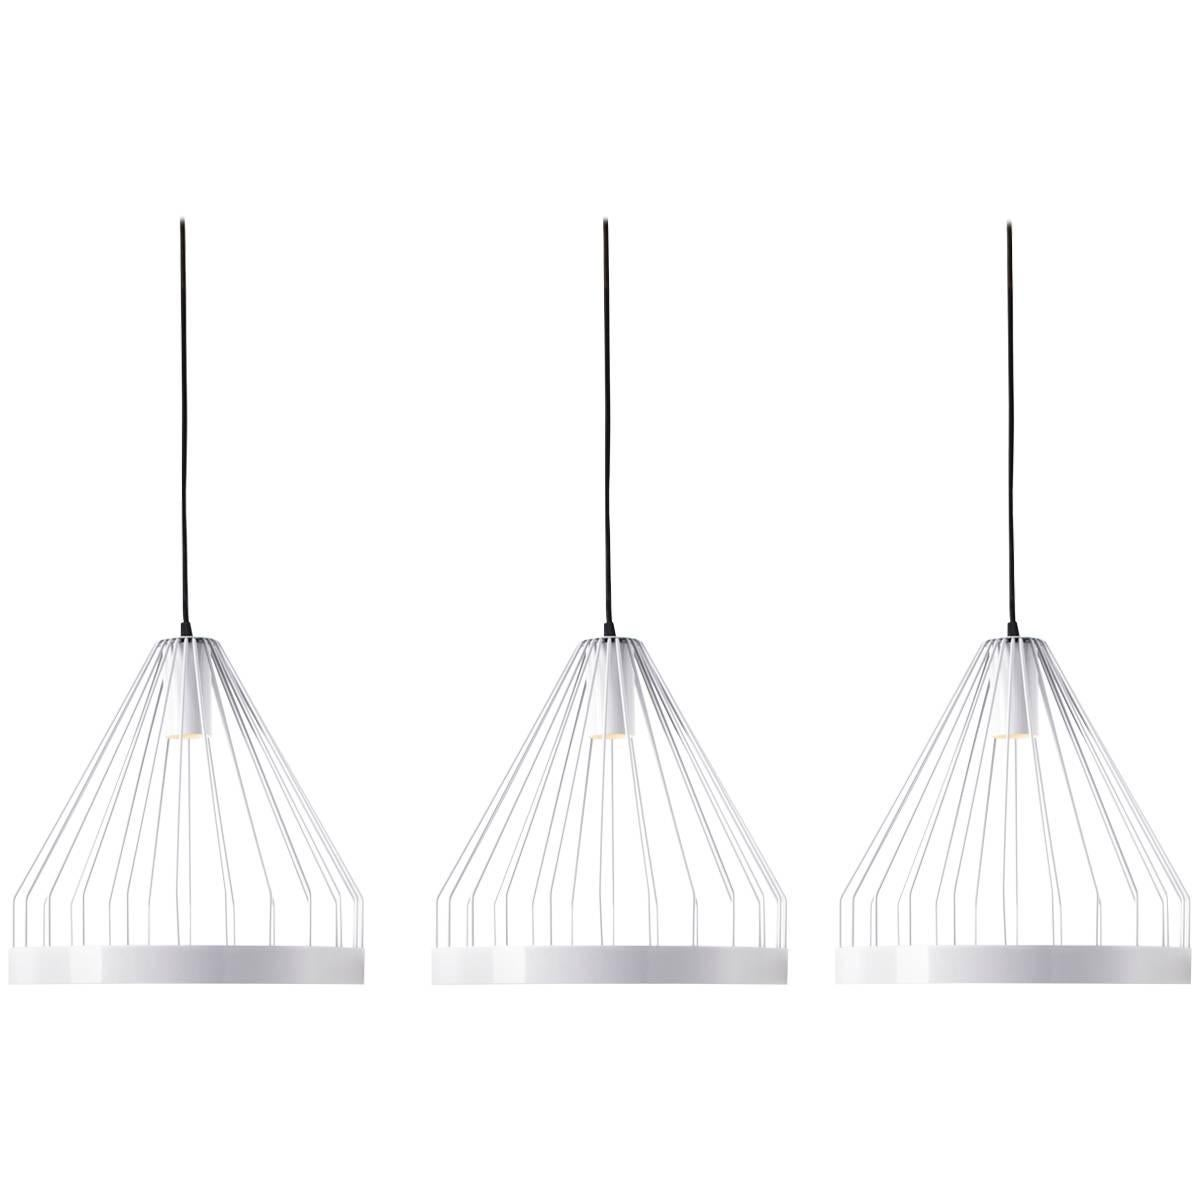 Three UL Contemporary Concealed LED Pale Gray Steel Hanging Pendant Lights